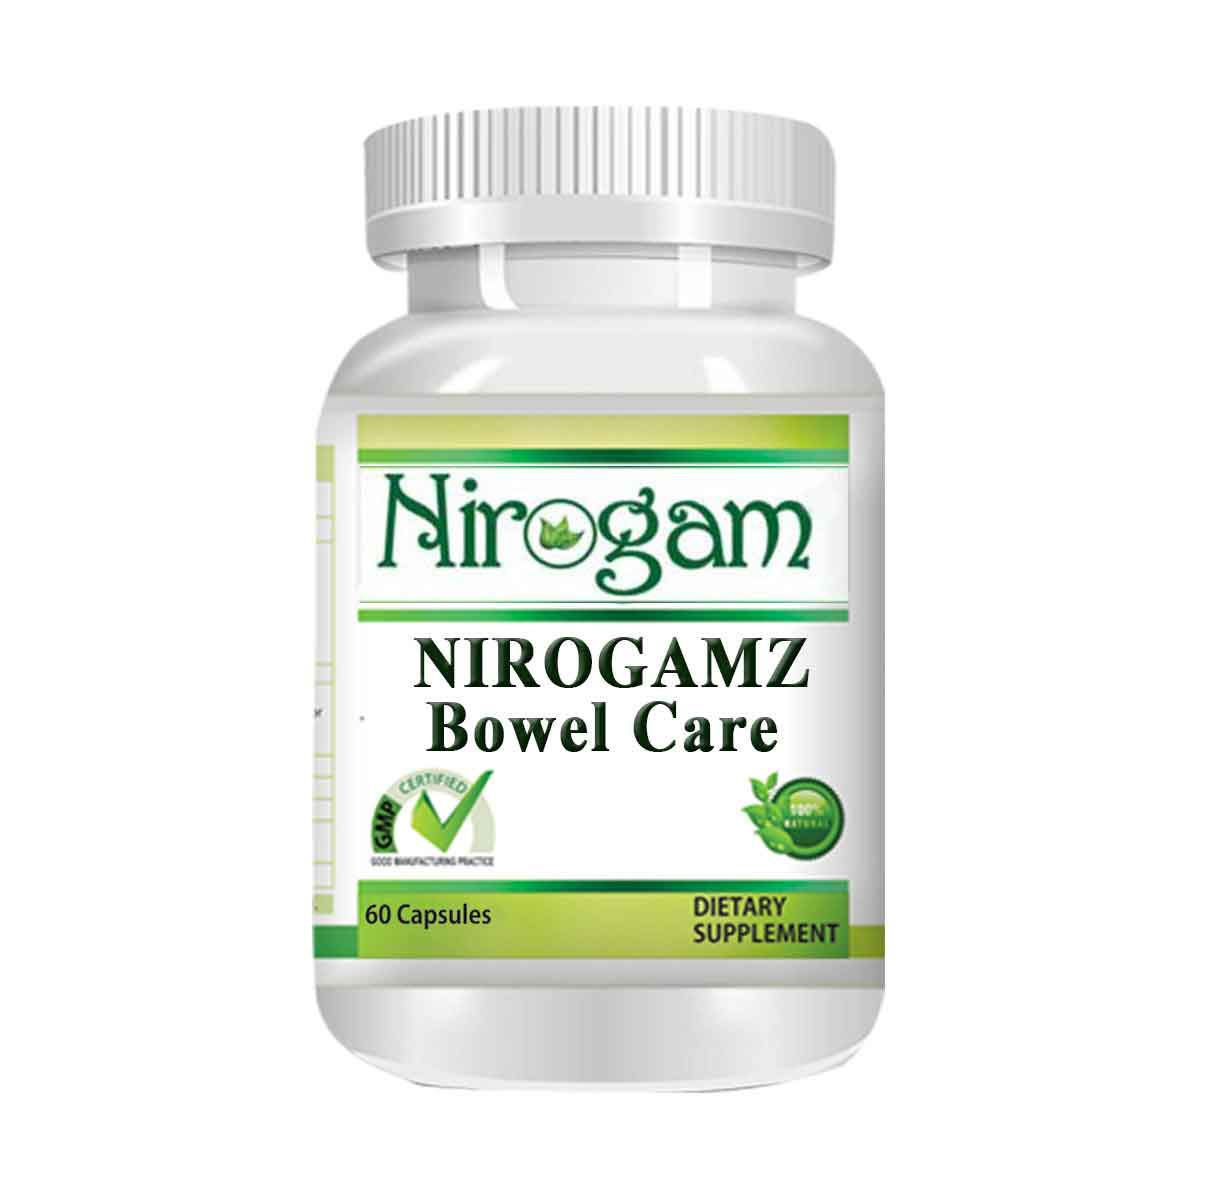 Nirogamz Bowel Care